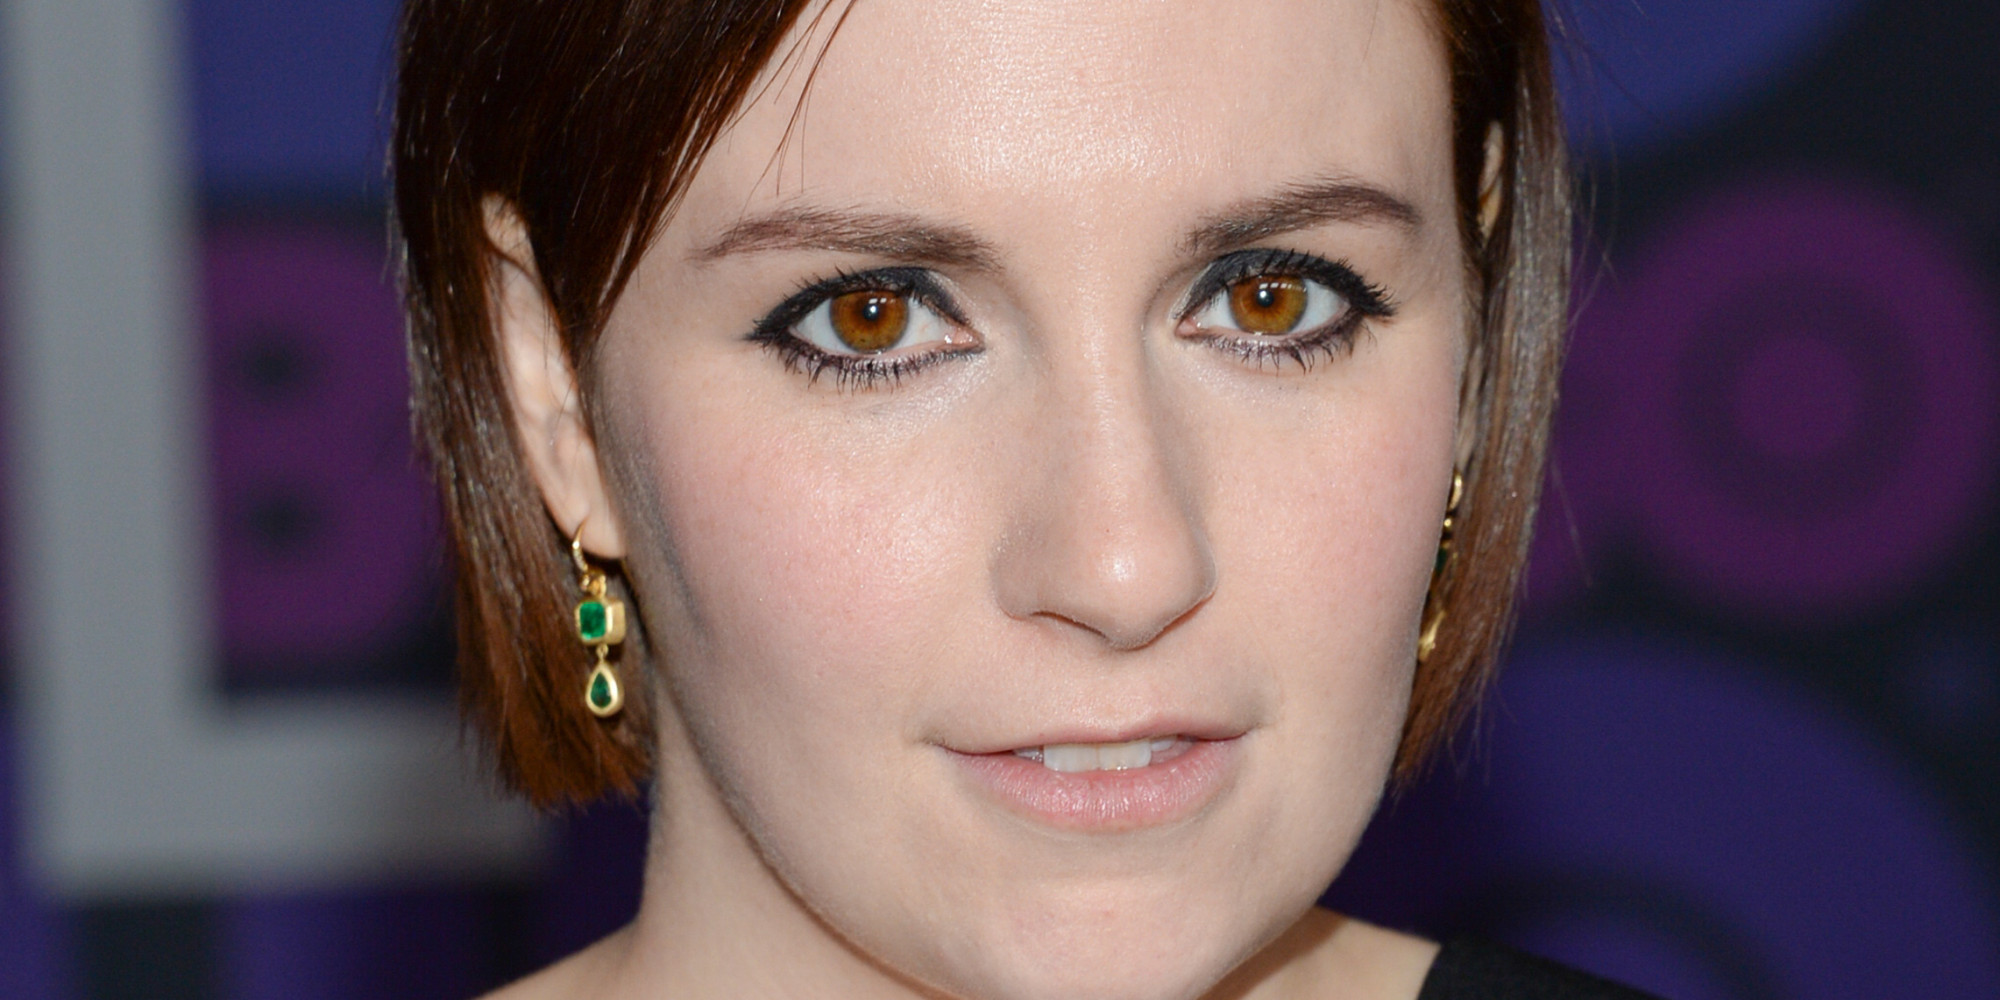 Lena Dunham Chops Her Hair Into A Pixie Cut Huffpost